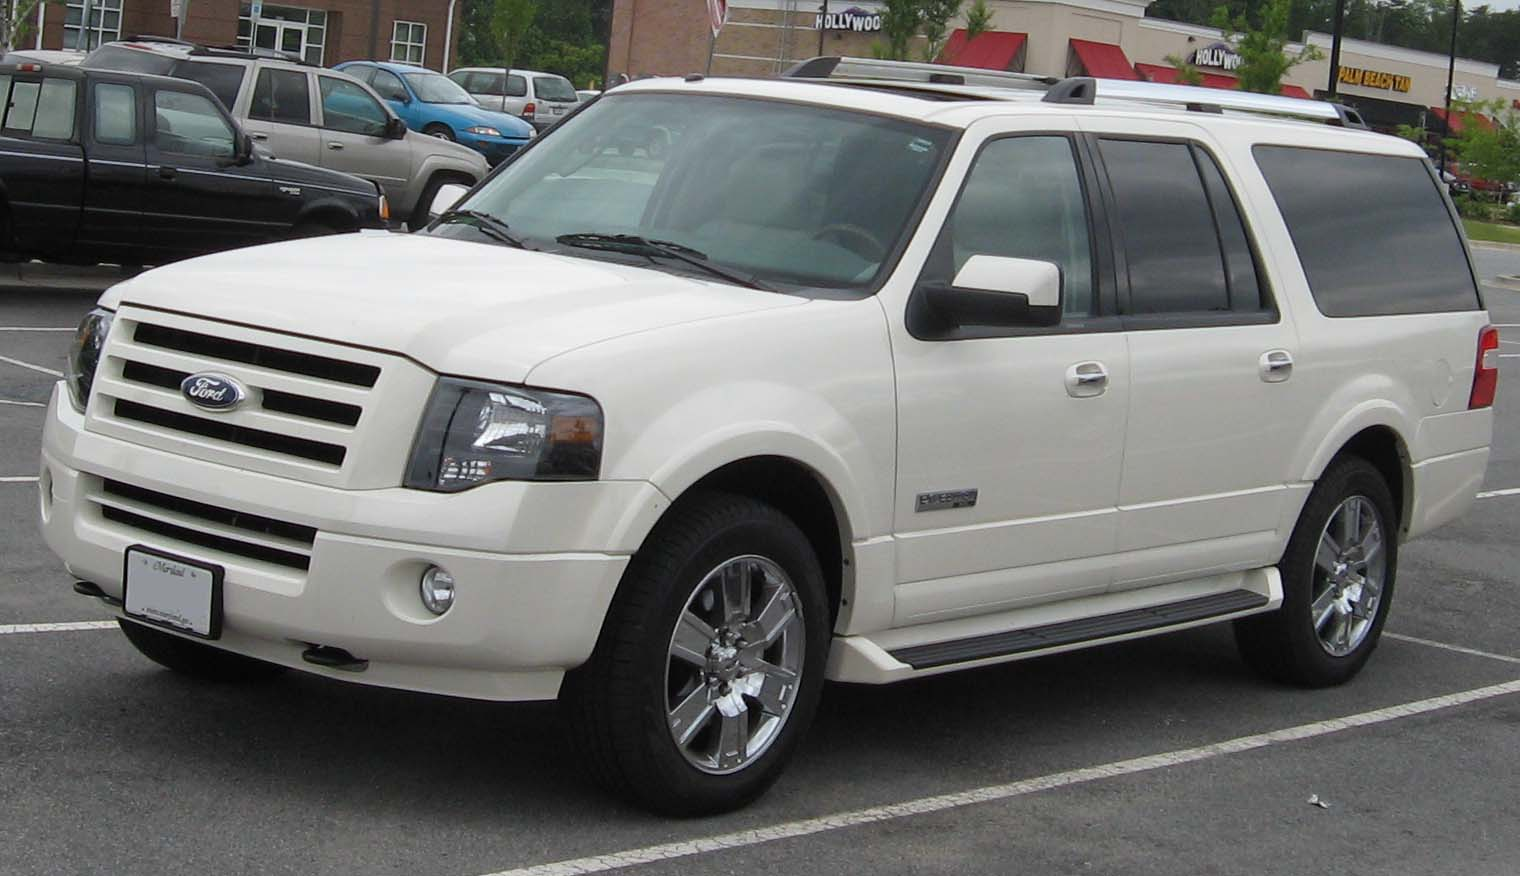 Ford Expedition Limited picture 6 reviews news specs car